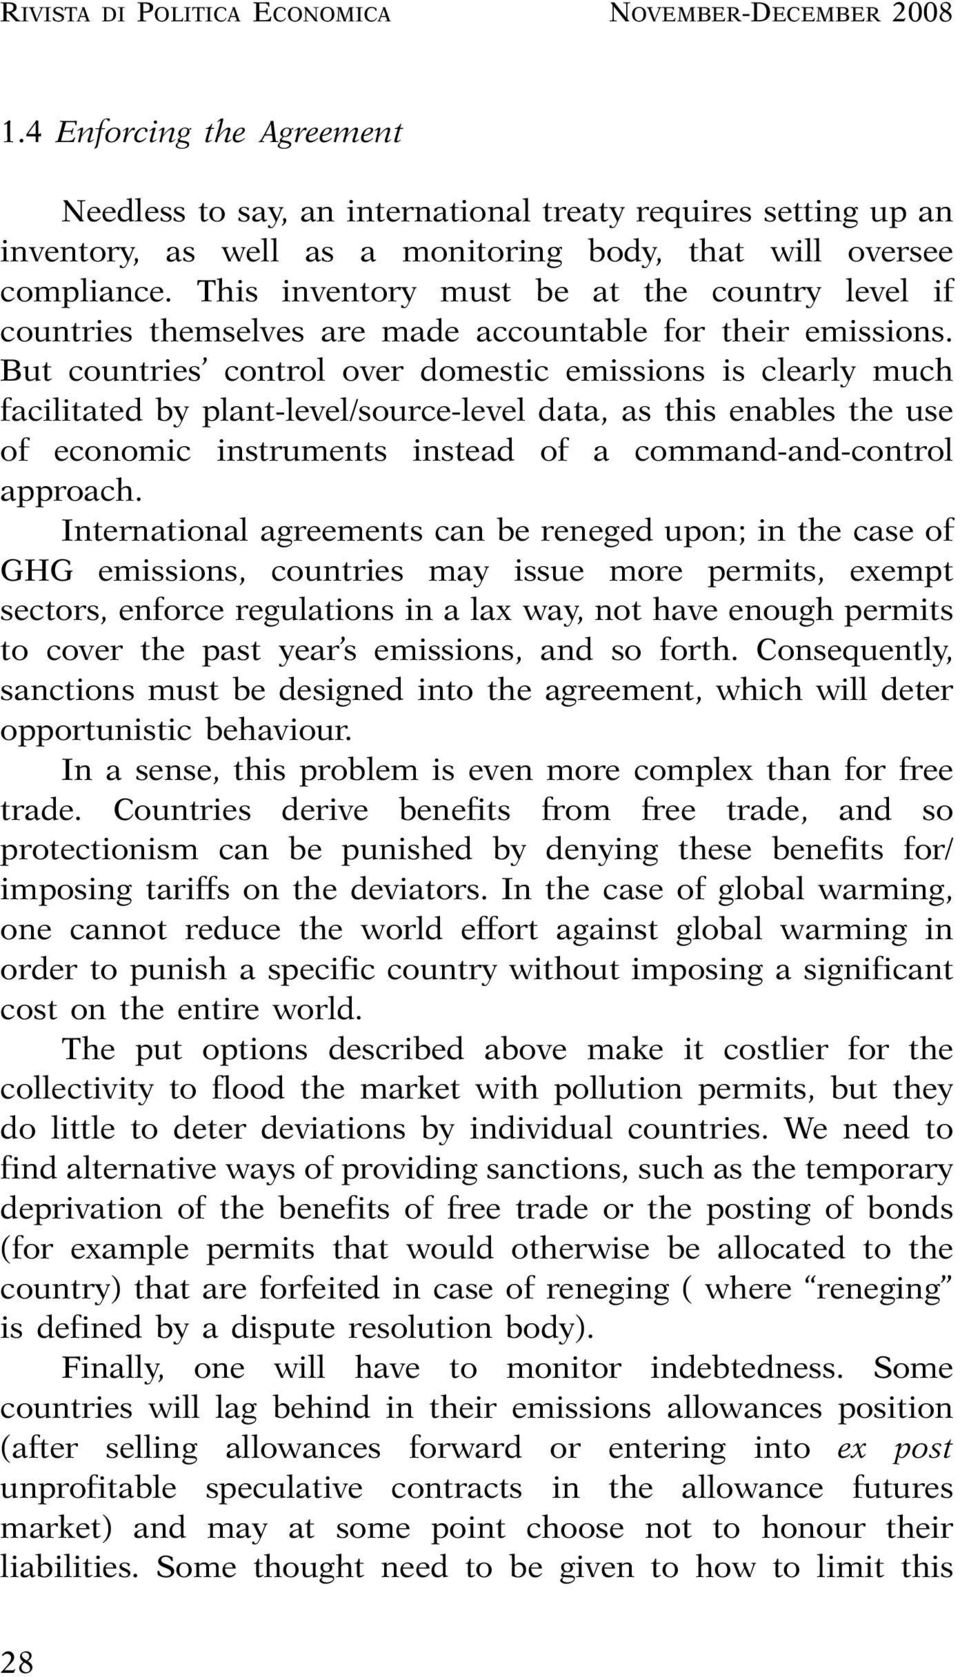 This inventory must be at the country level if countries themselves are made accountable for their emissions.